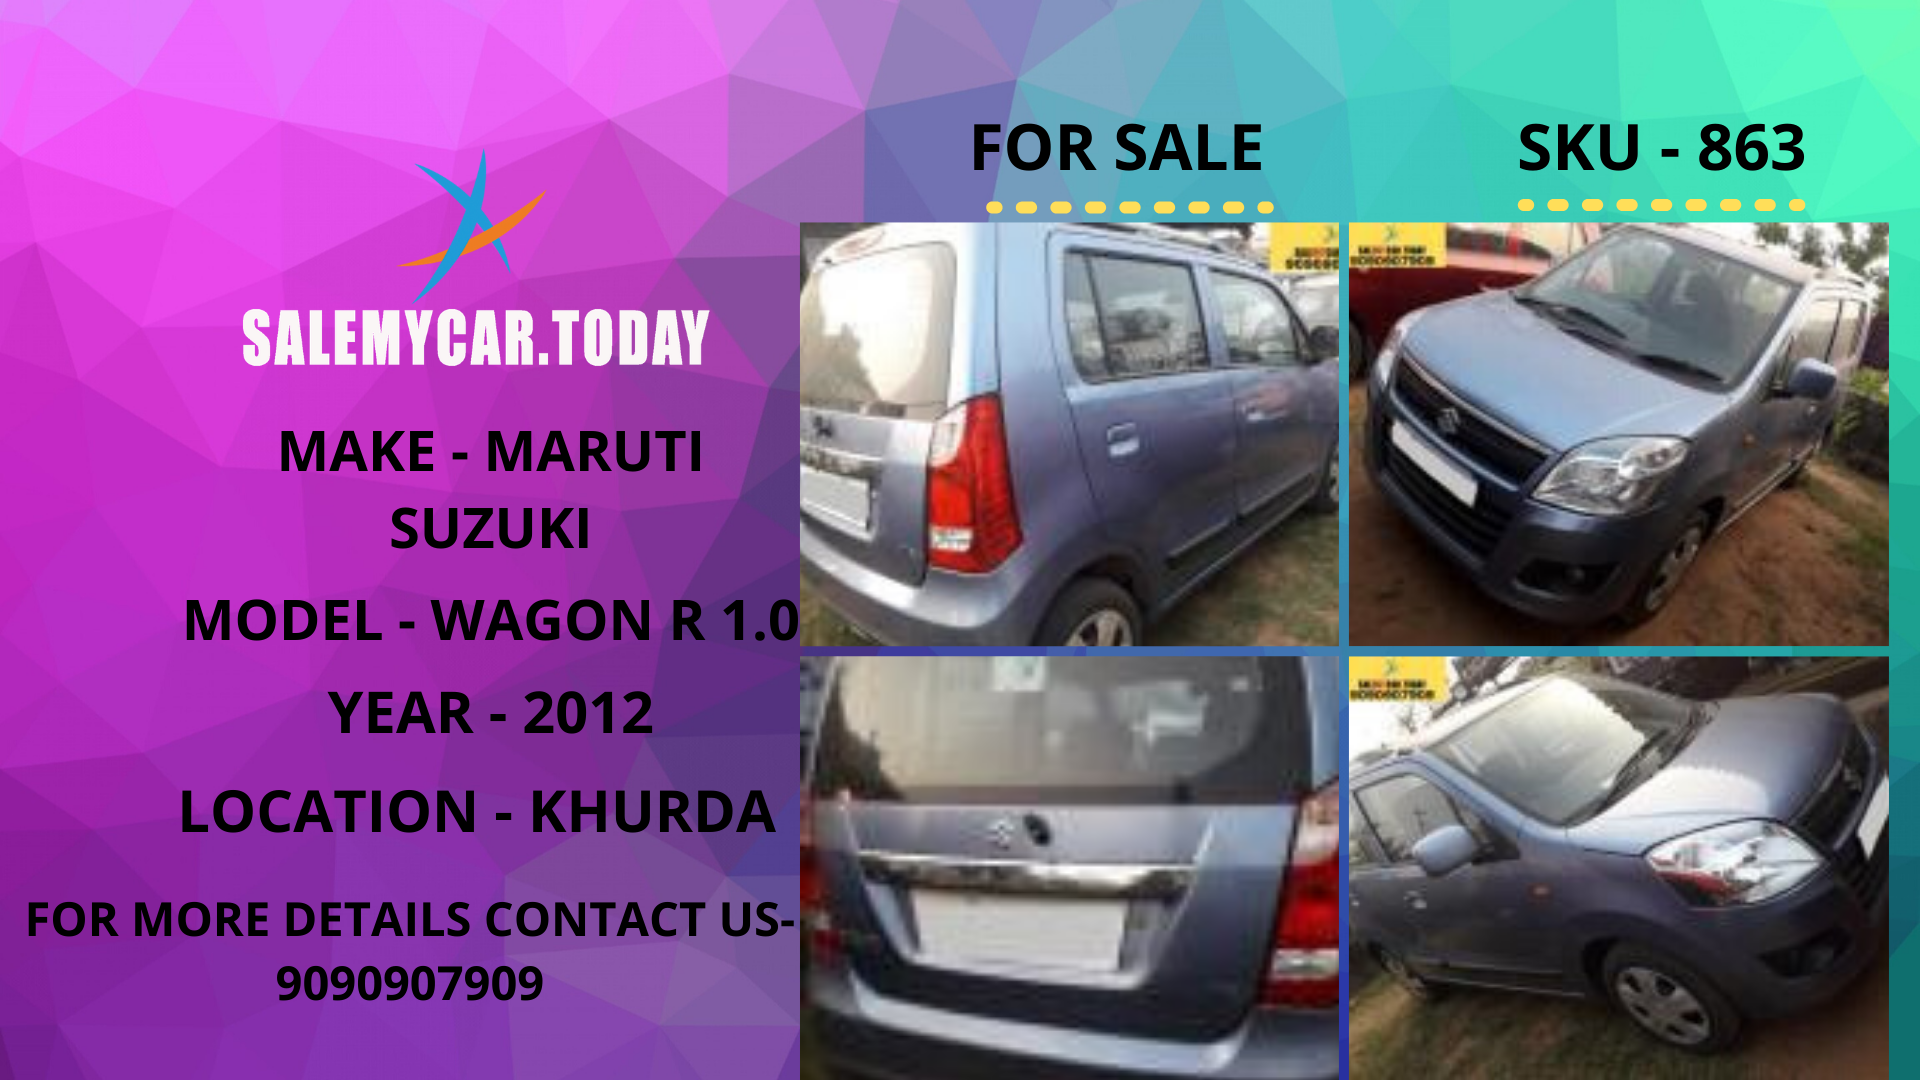 USED MARUTI SUZUKI WAGON R 1.0 OF 2012 FOR SALE IN KHURDA